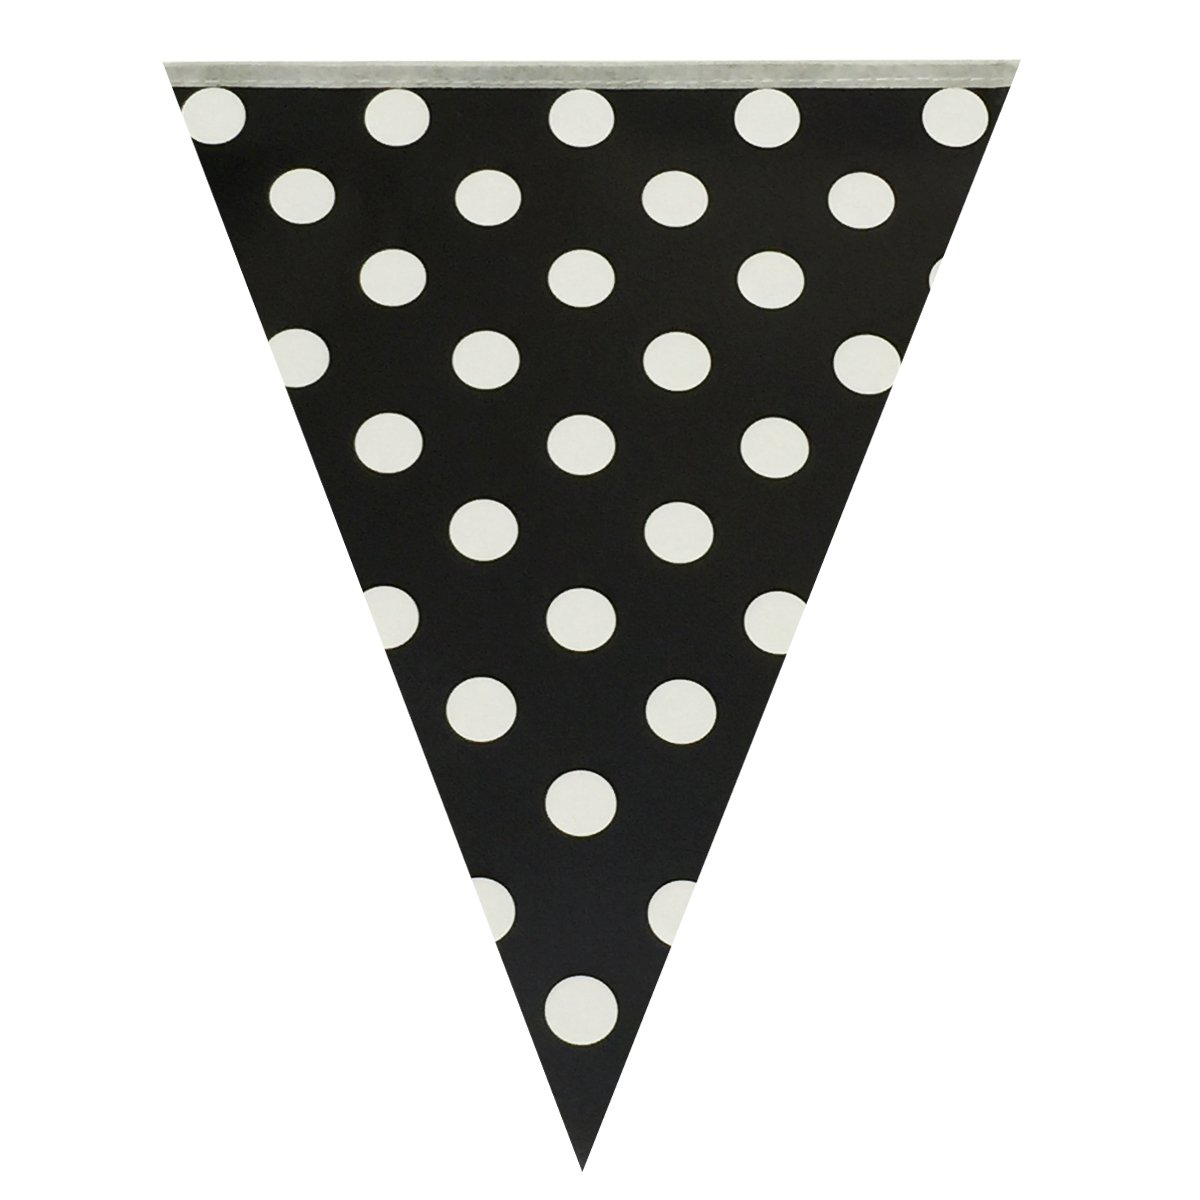 Wrapables Triangle Pennant Banner Party Decorations for Birthday Parties/Baby Showers/Nursery Decor/Picnics and Bake Sales, Black Polka Dots